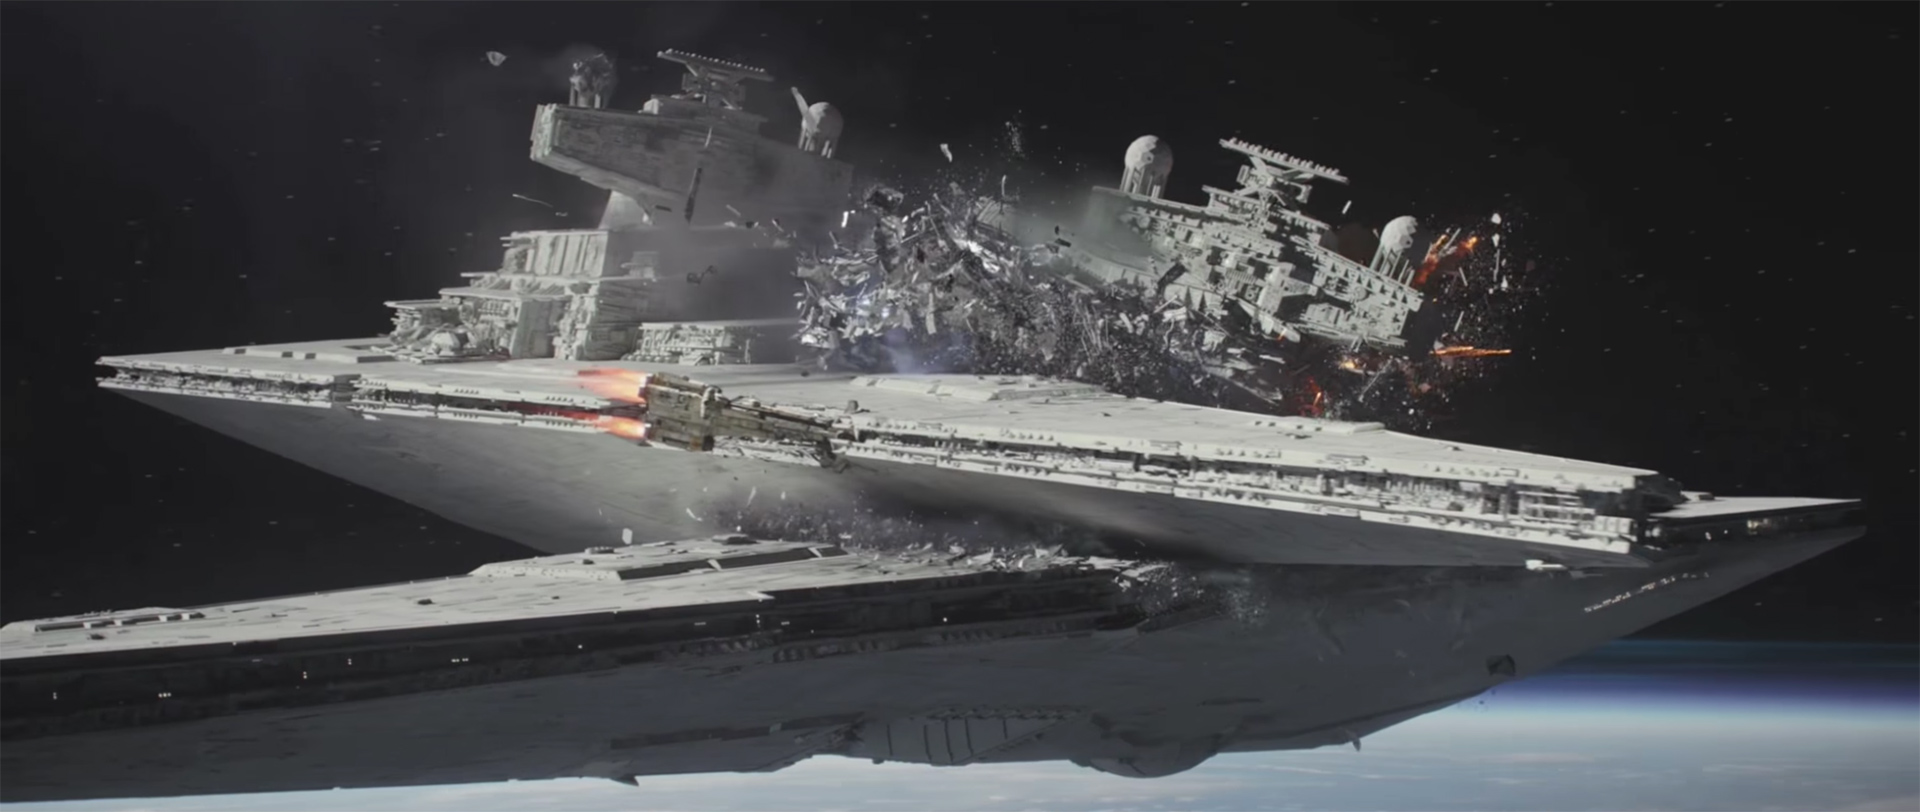 rogue-one-space-battle-star-destroyers.jpg